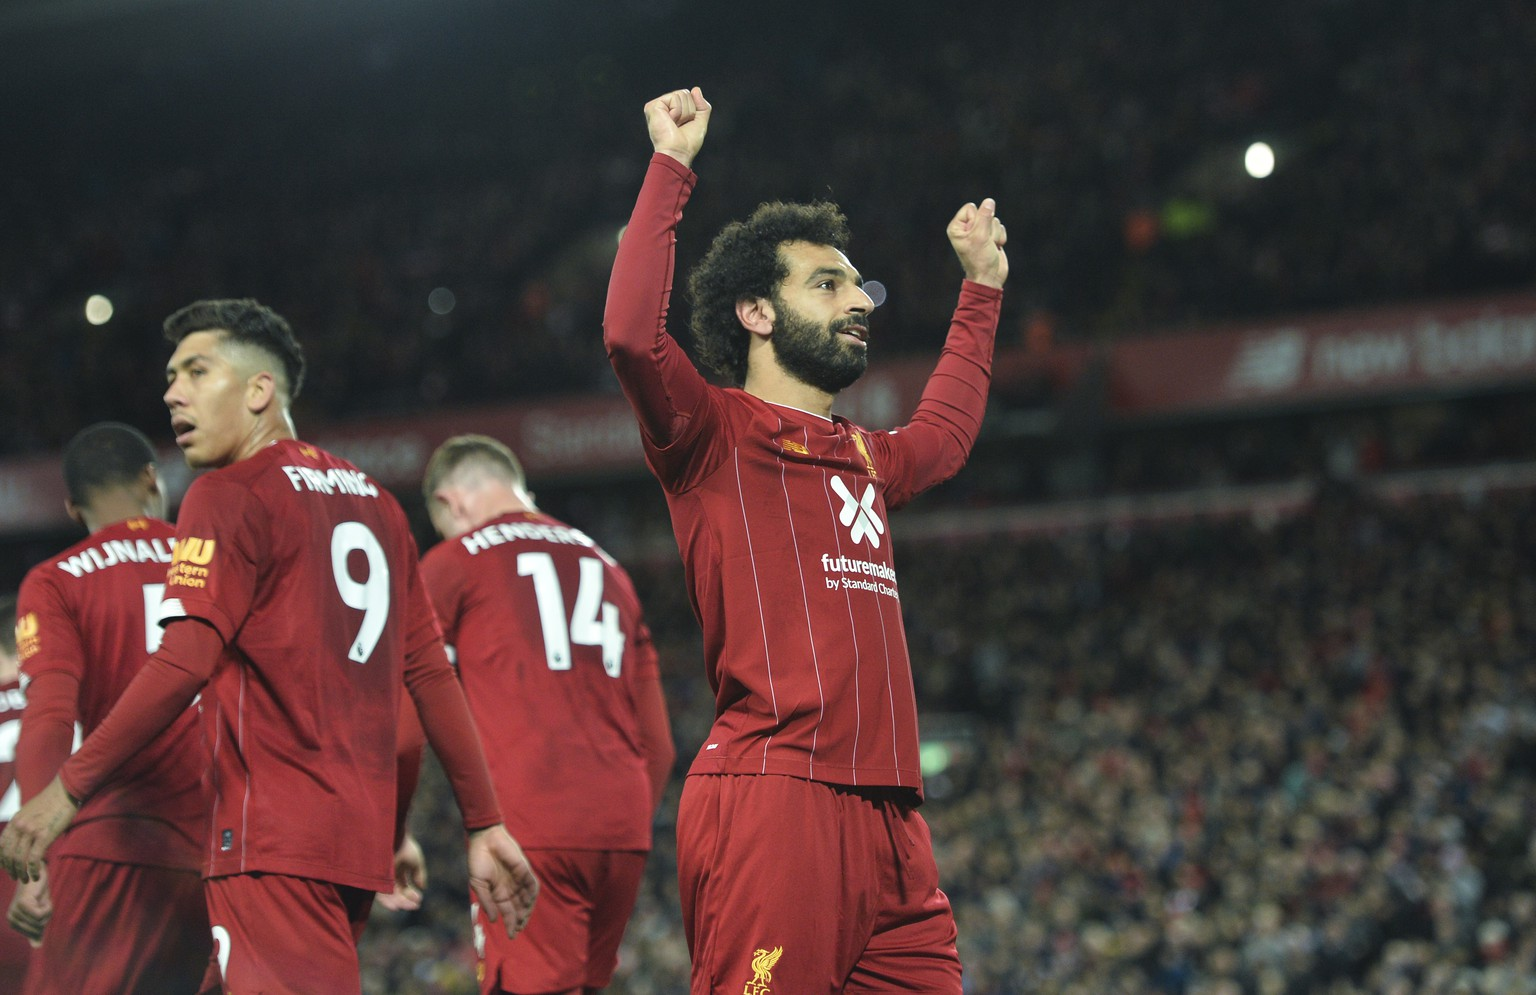 epa07954460 Liverpool's Mohamed Salah celebrates after scoring the 2-1 goal during the English Premier League game between Liverpool FC and Tottenham Hotspur in Liverpool, Britain, 27 October 2019.  EPA/PETER POWELL EDITORIAL USE ONLY. No use with unauthorized audio, video, data, fixture lists, club/league logos or 'live' services. Online in-match use limited to 120 images, no video emulation. No use in betting, games or single club/league/player publications.